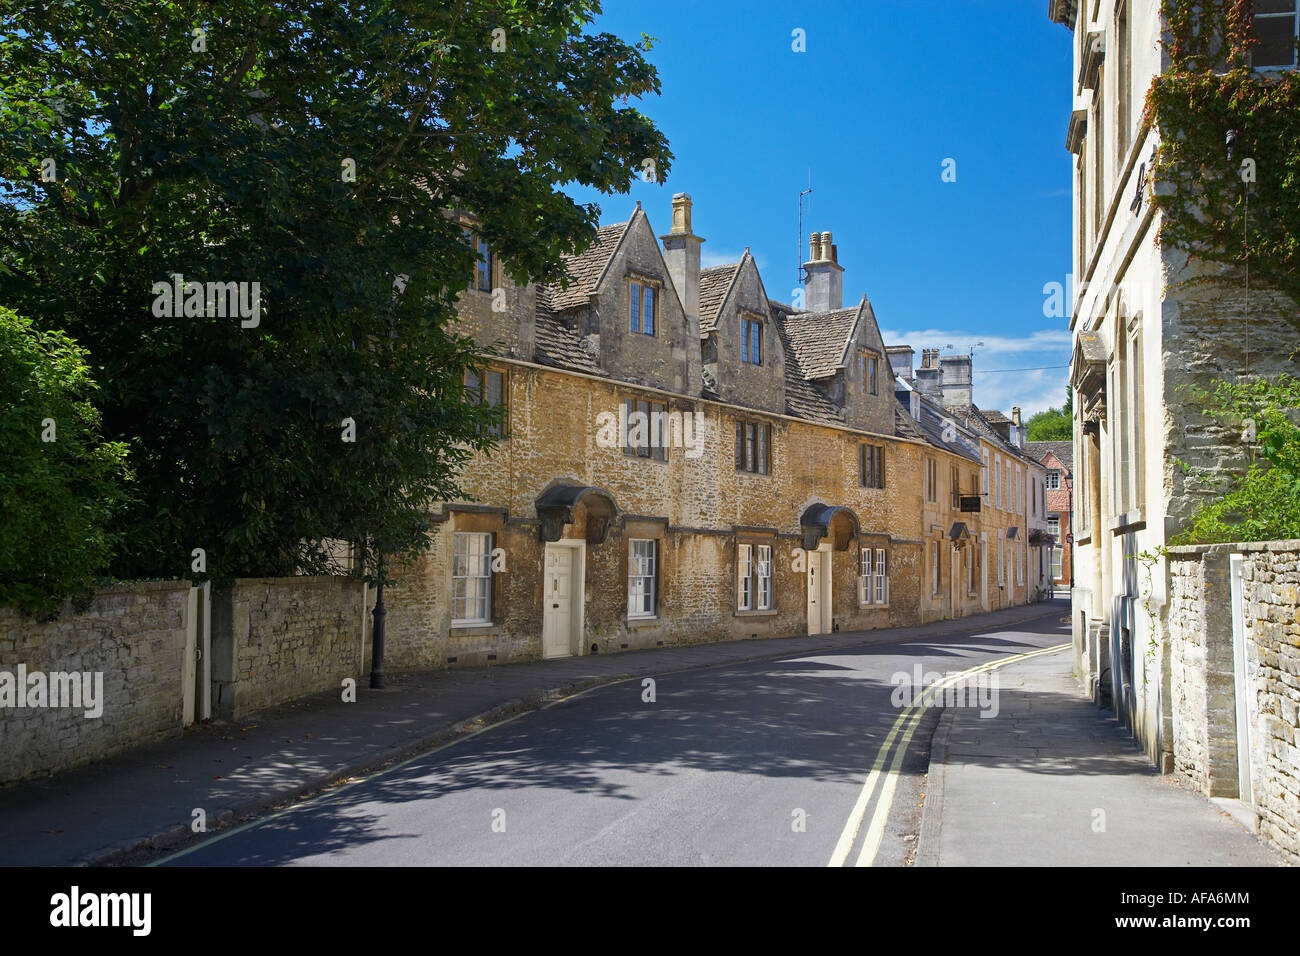 Cottages in Corsham, Wiltshire, England, UK Stock Photo